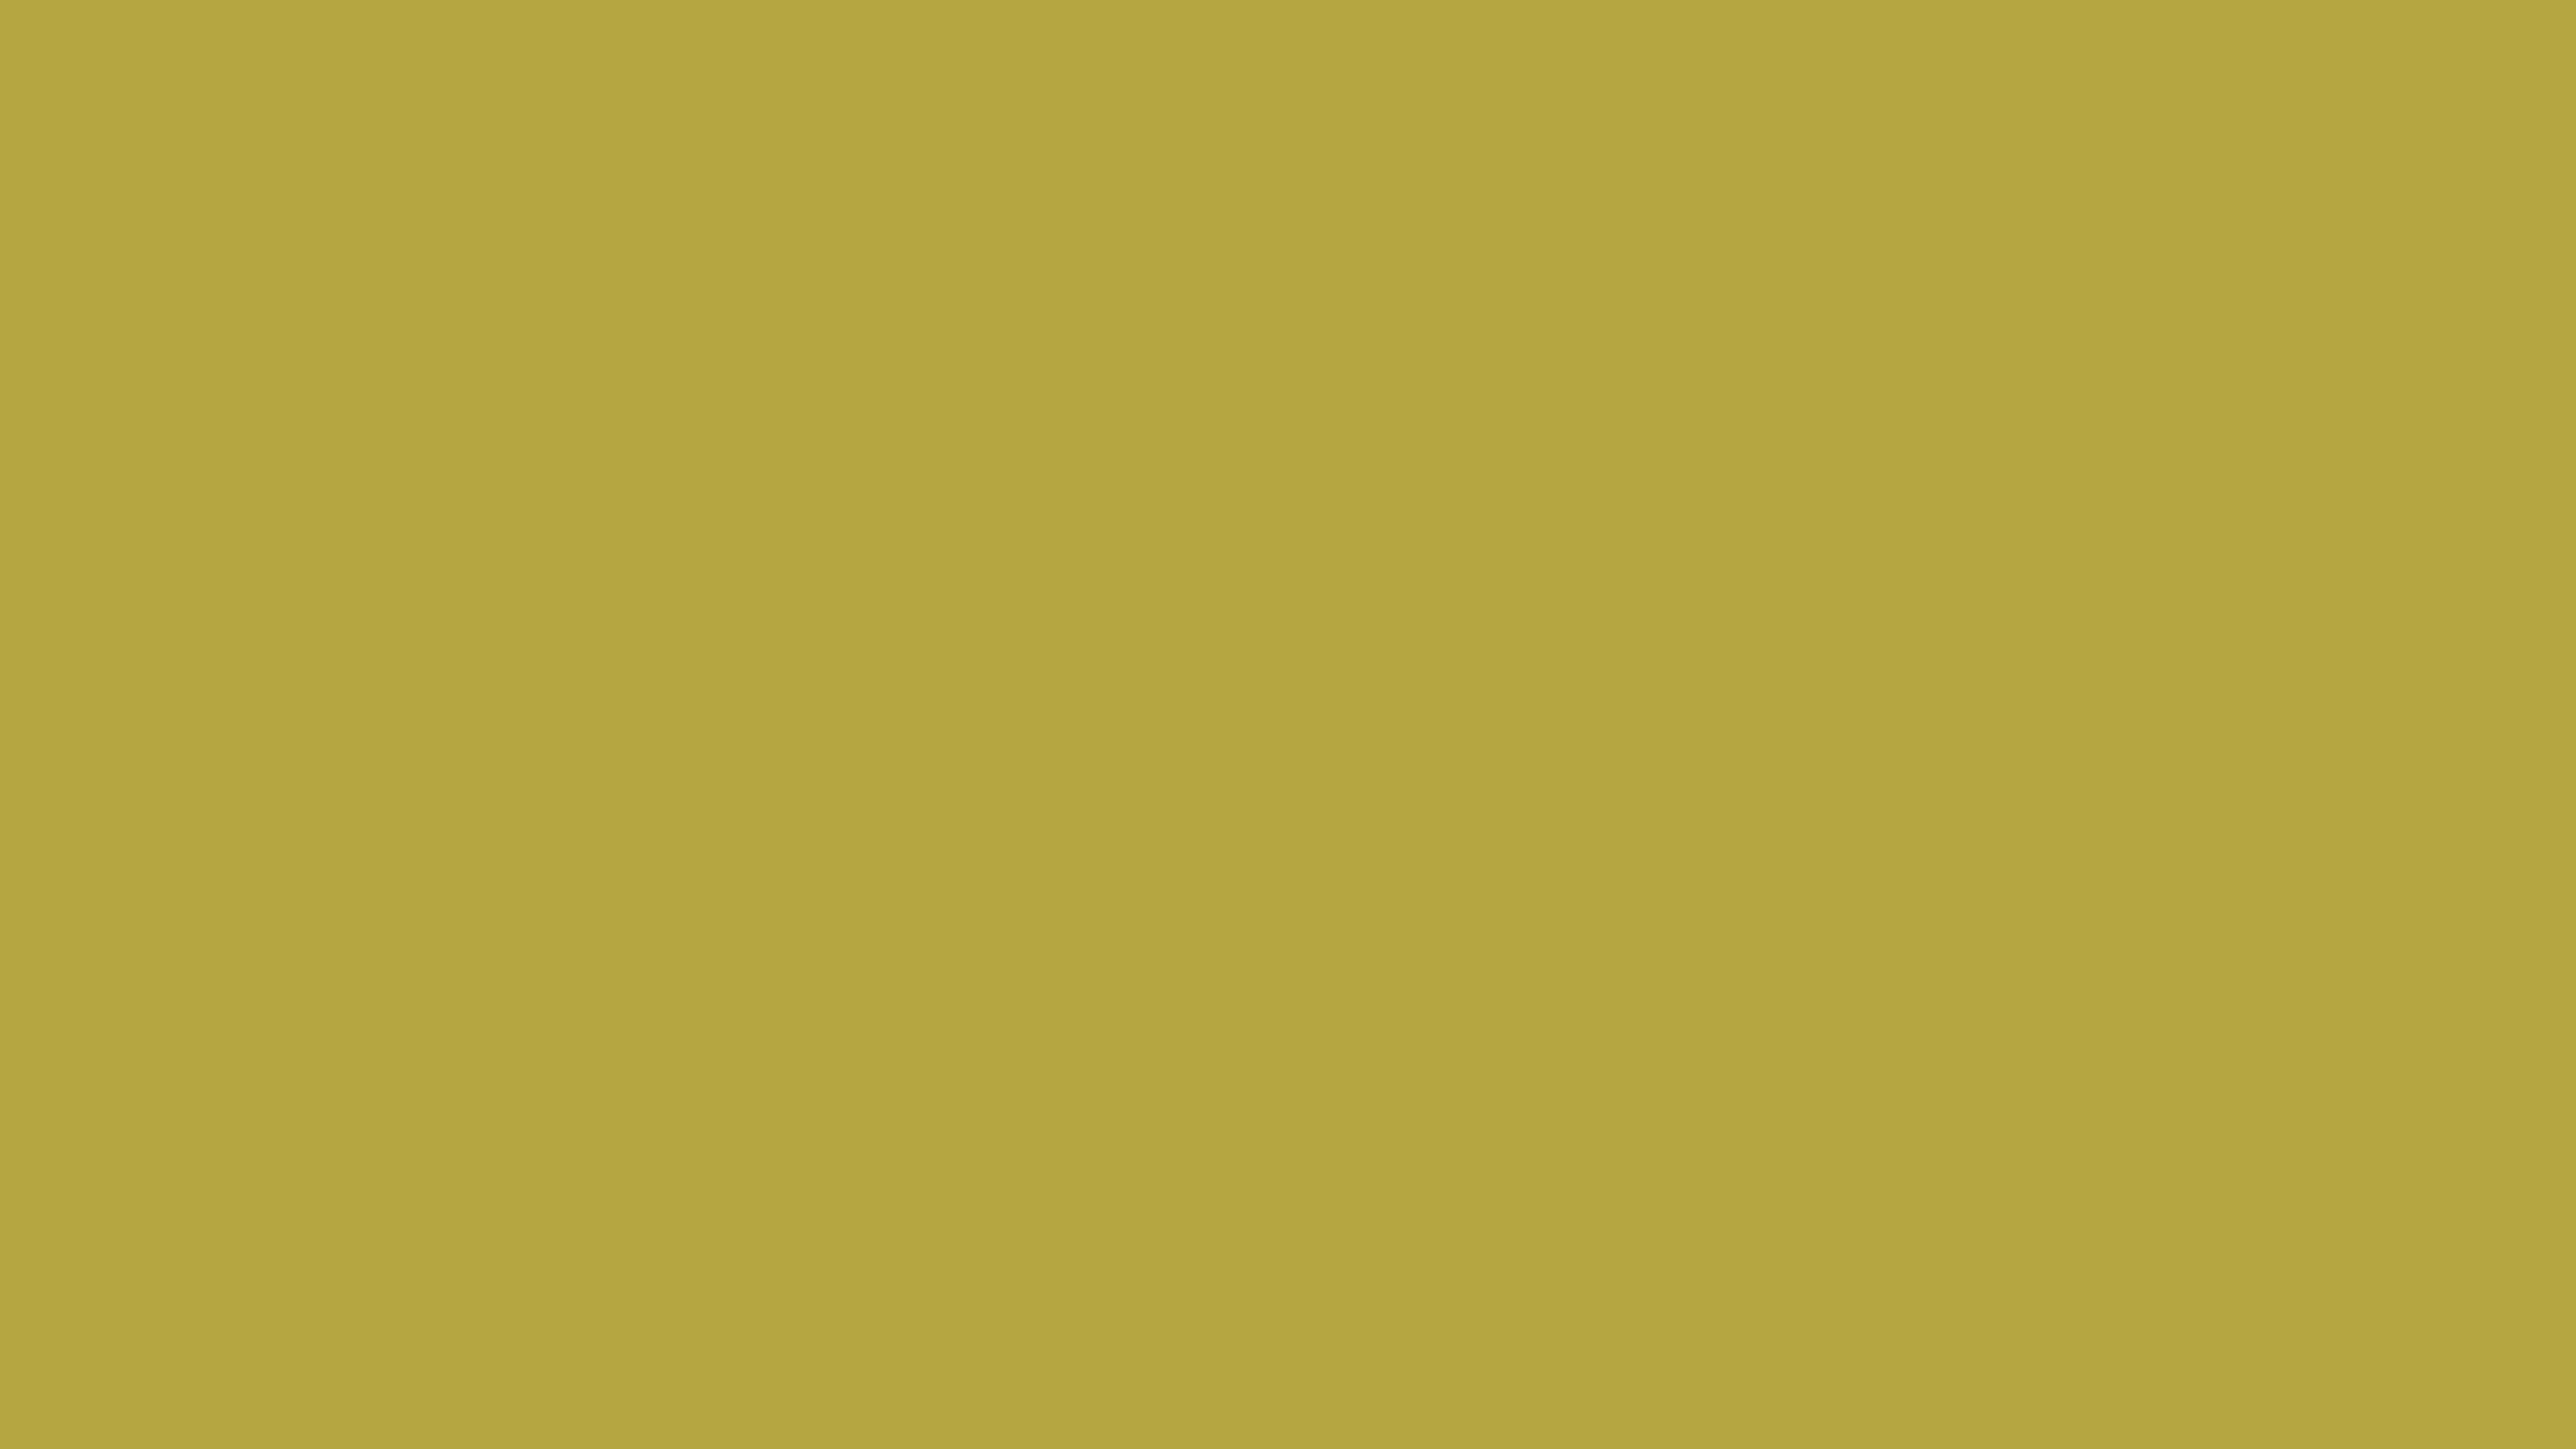 4096x2304 Brass Solid Color Background